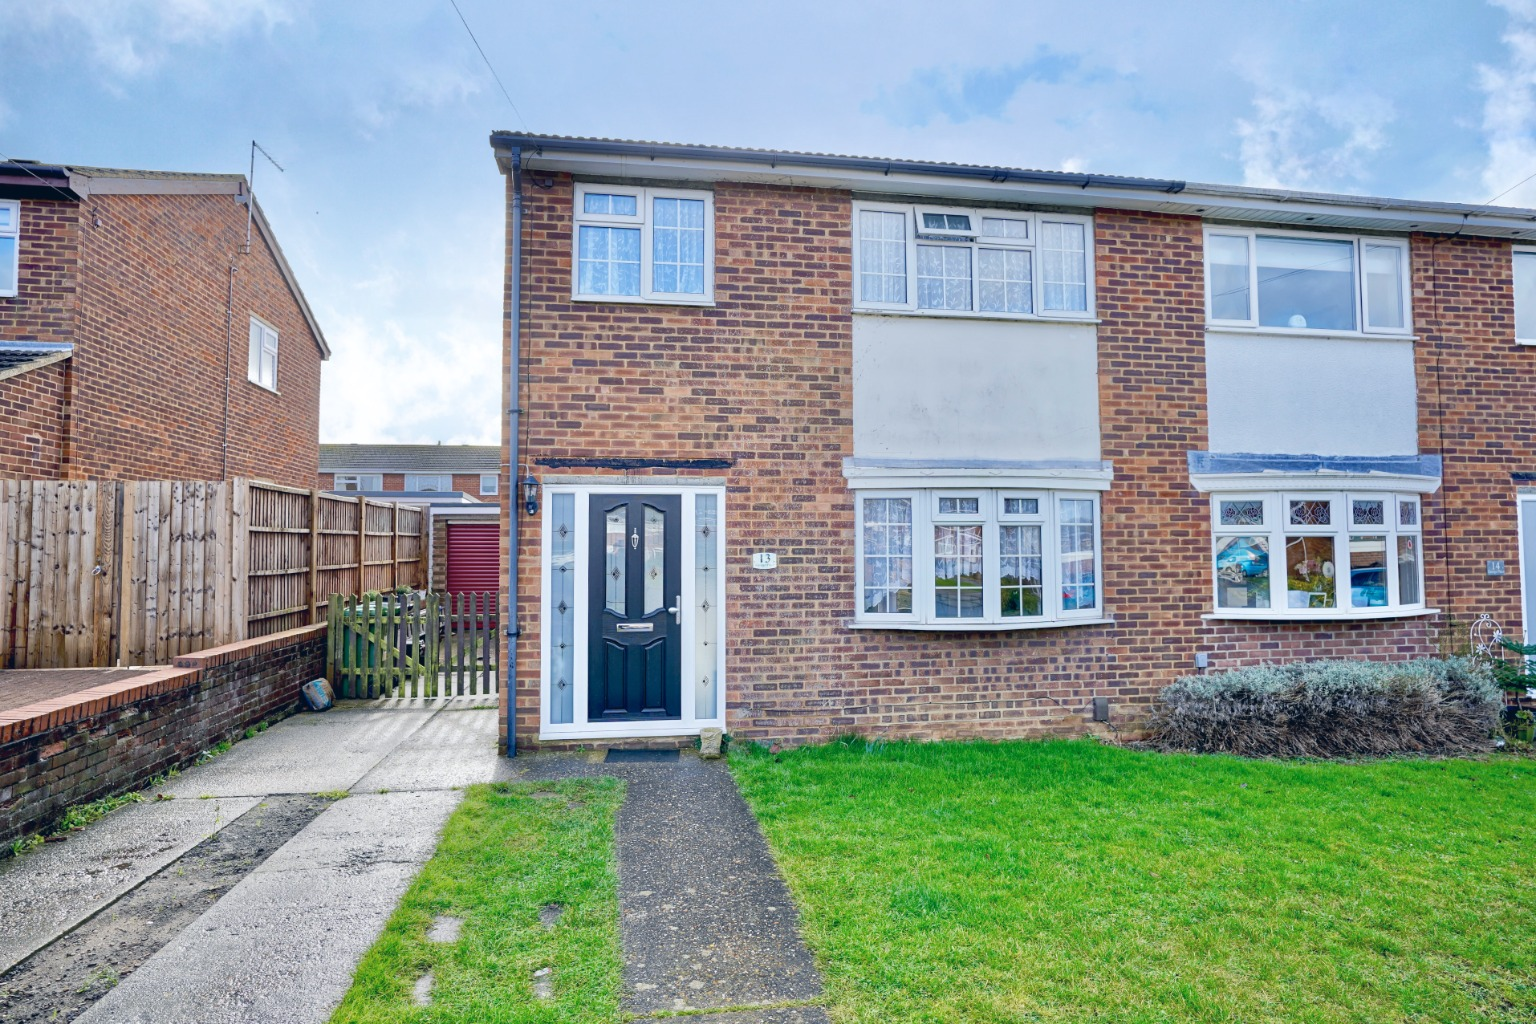 3 bed  for sale in George Place, St. Neots, PE19